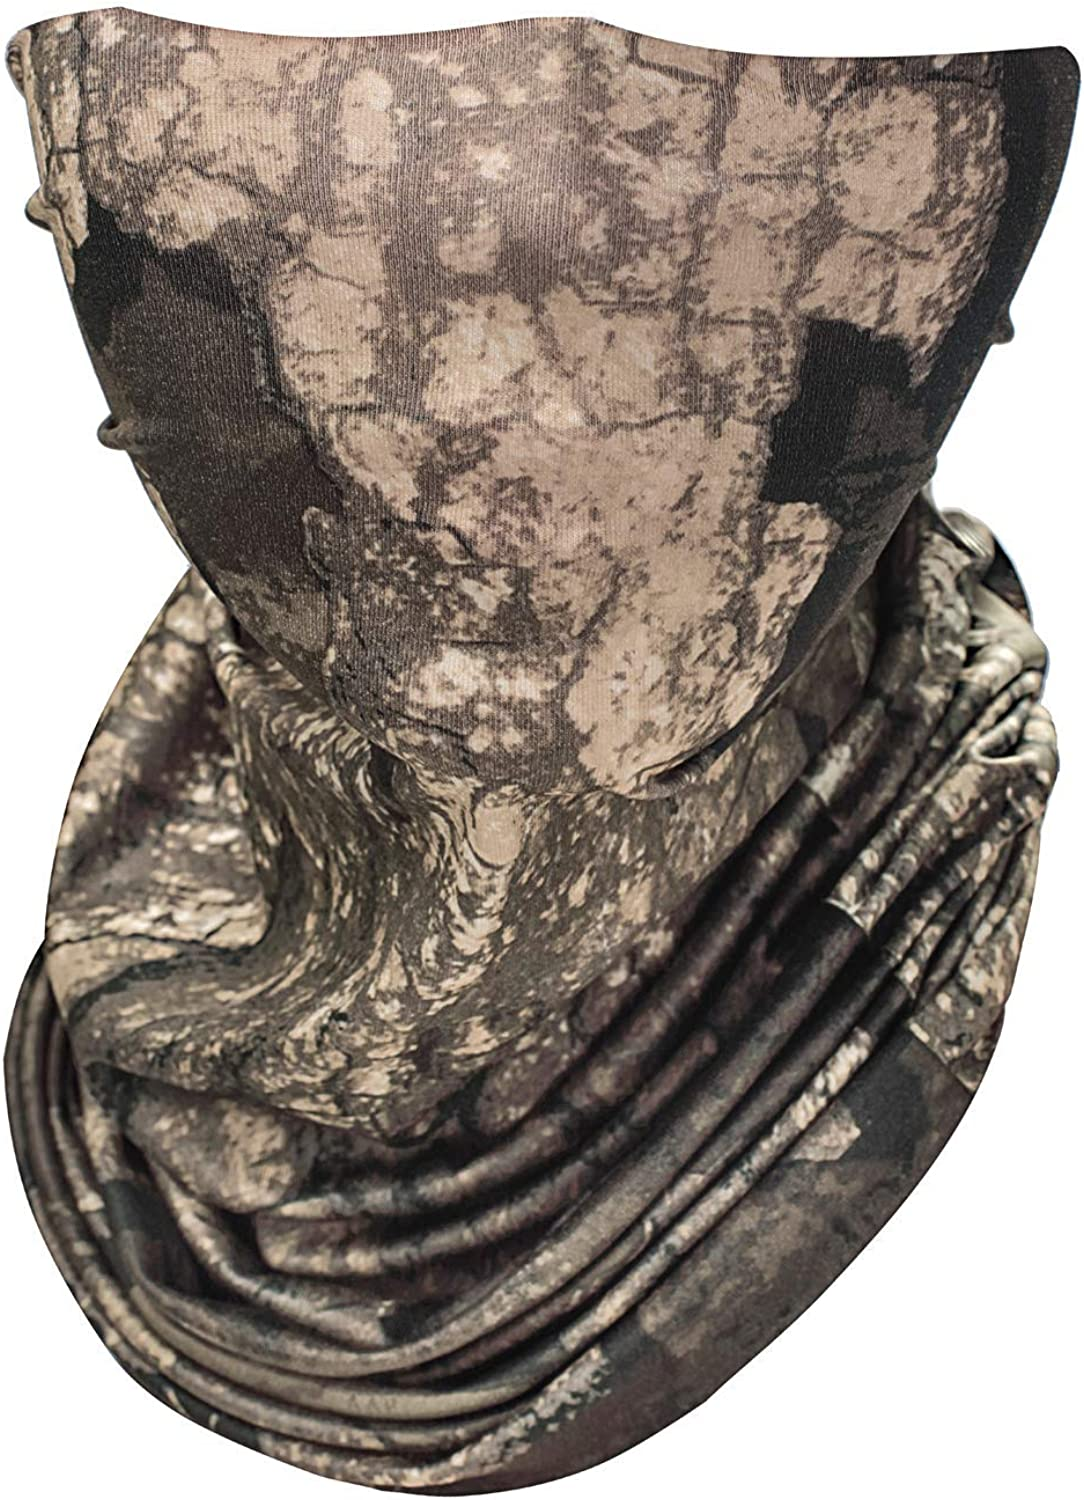 8 Fans Realtree Camo Summer UV Protection Face Mask,Reusable Headwear,Neck Gaiter, for Sport,Outdoor,Fishing,Cycling